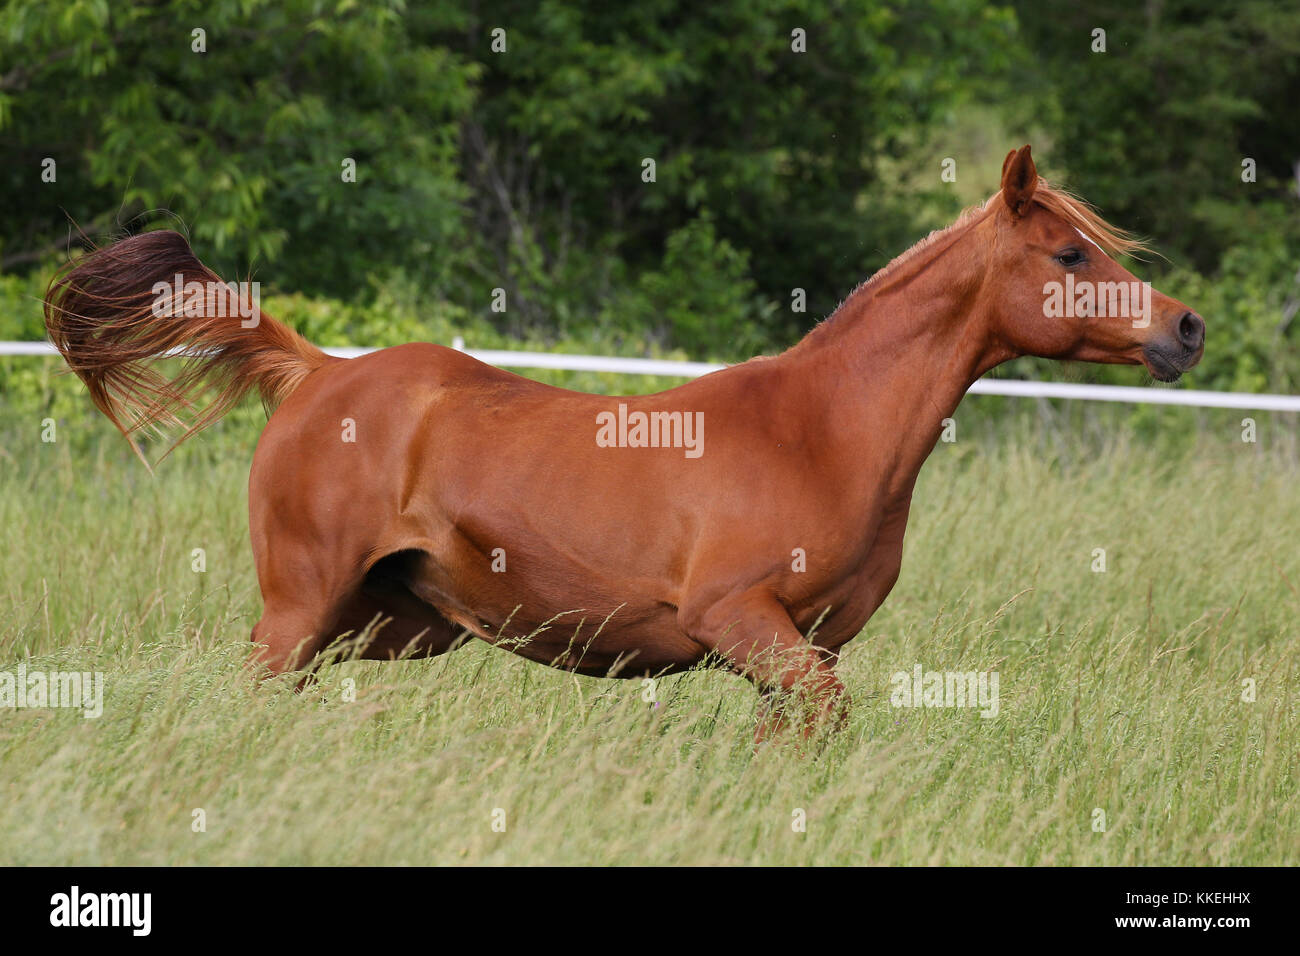 Chestnut Mare Stock Photos & Chestnut Mare Stock Images ... - photo#37